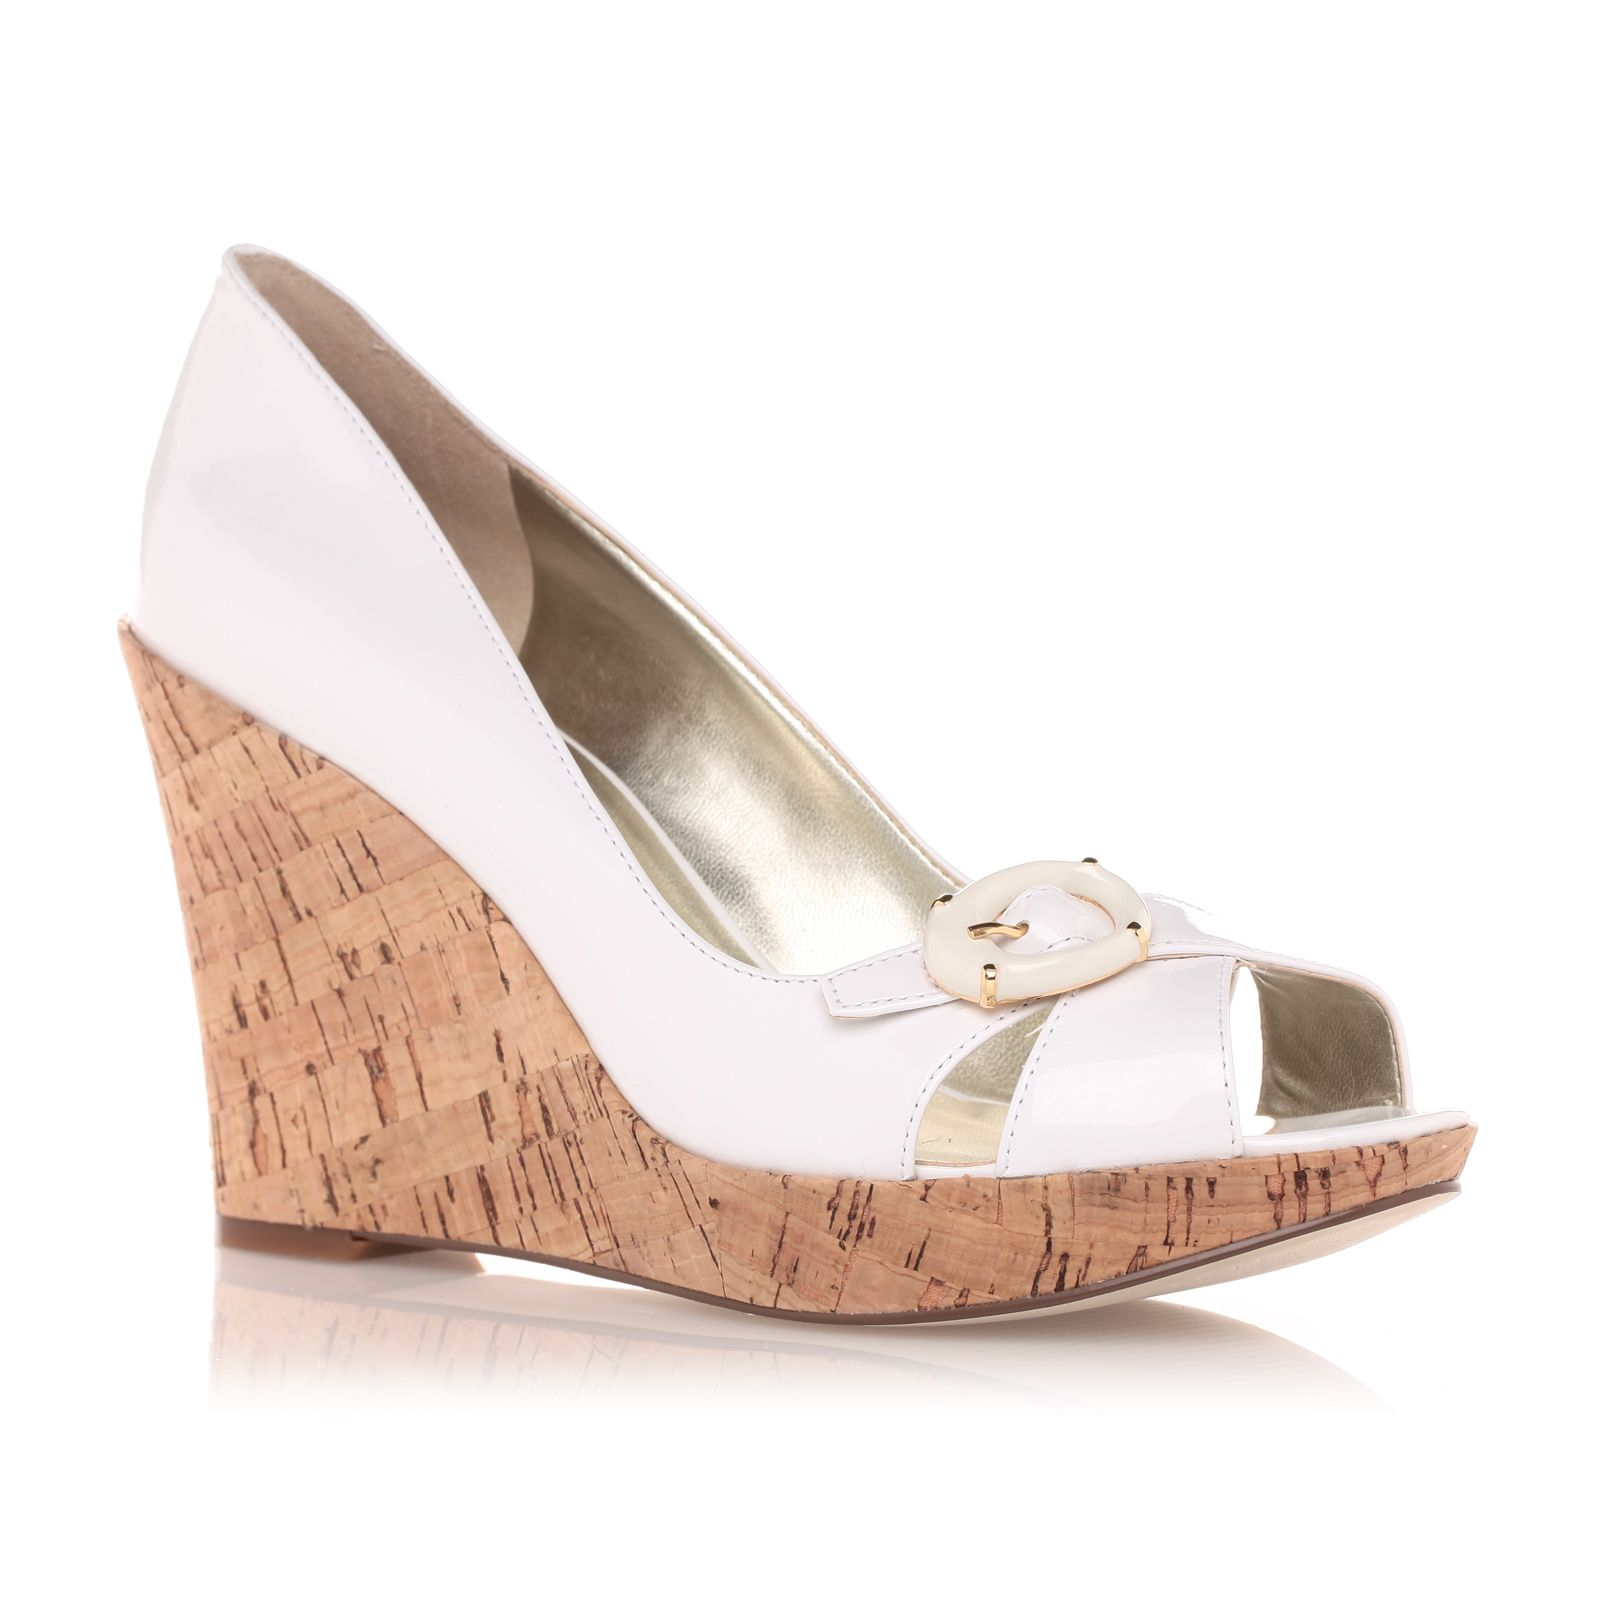 MARCIANO LOS ANGELES Guess - Chaussures à talon compensé blanches vernis -  by Marciano ccfb1440d05